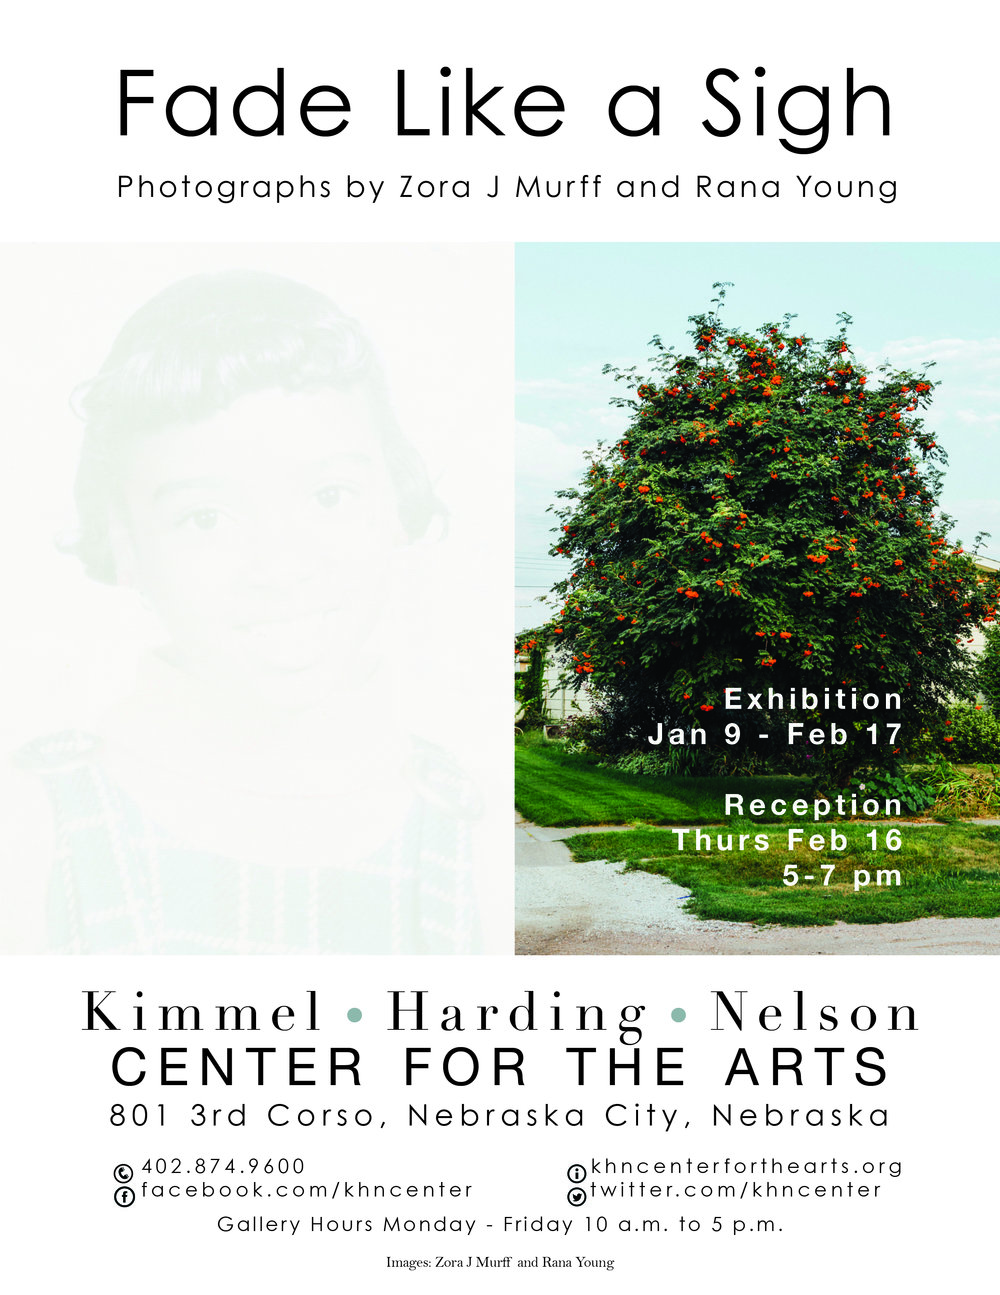 Zora J Murff and I are exhibiting our collaborative body of work Fade Like a SIgh at Kimmel Harding Nelson Center for the Arts! The show opens today! We will be giving a gallery talk during the closing reception on Feb. 16th from 5-7pm! More info here.